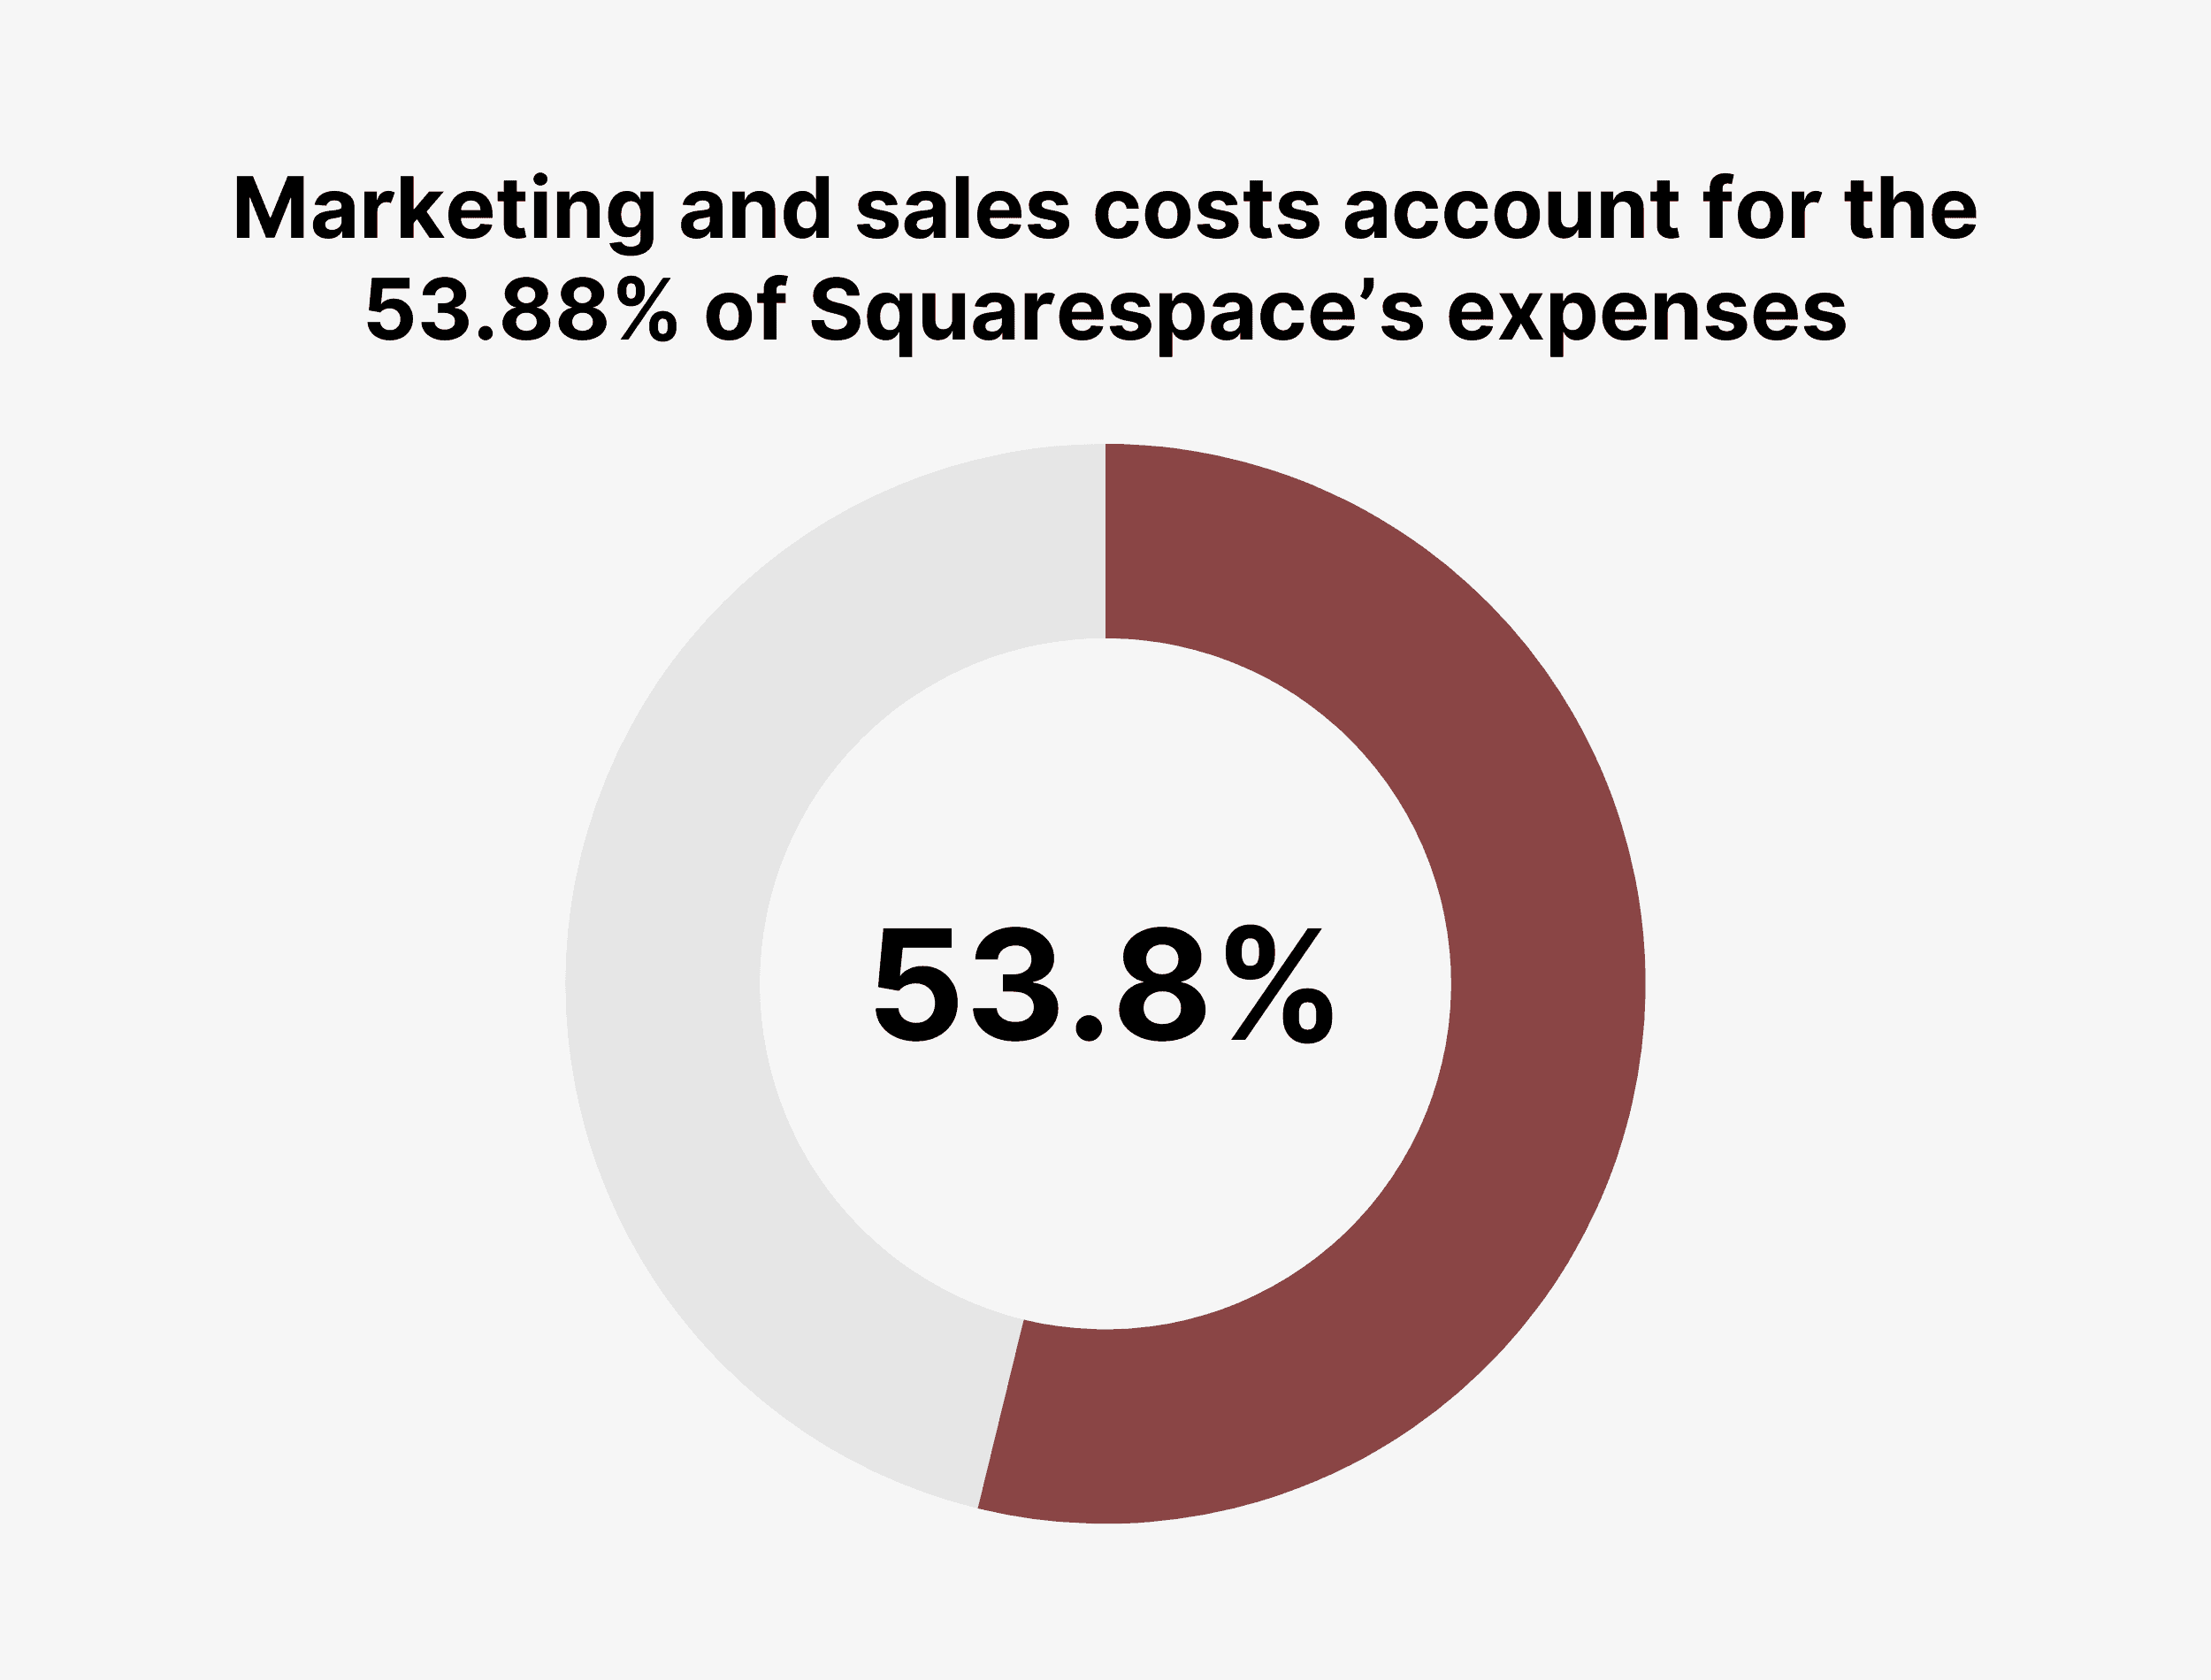 Marketing and sales costs account for the 53.88% of Squarespace's expenses